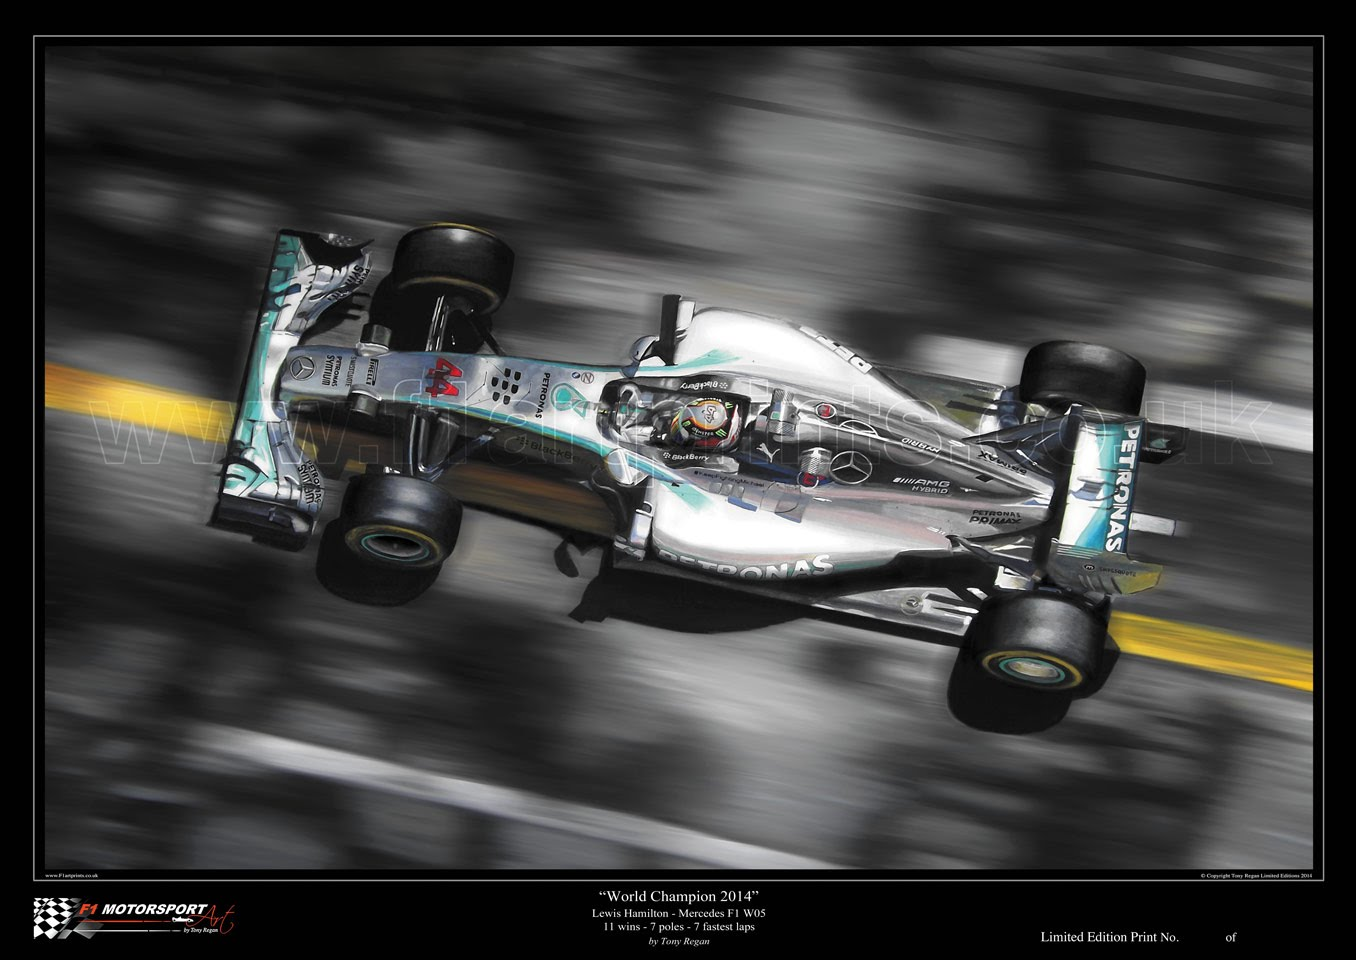 Lewis-Hamilton-World-Champion-2014-Art-Print